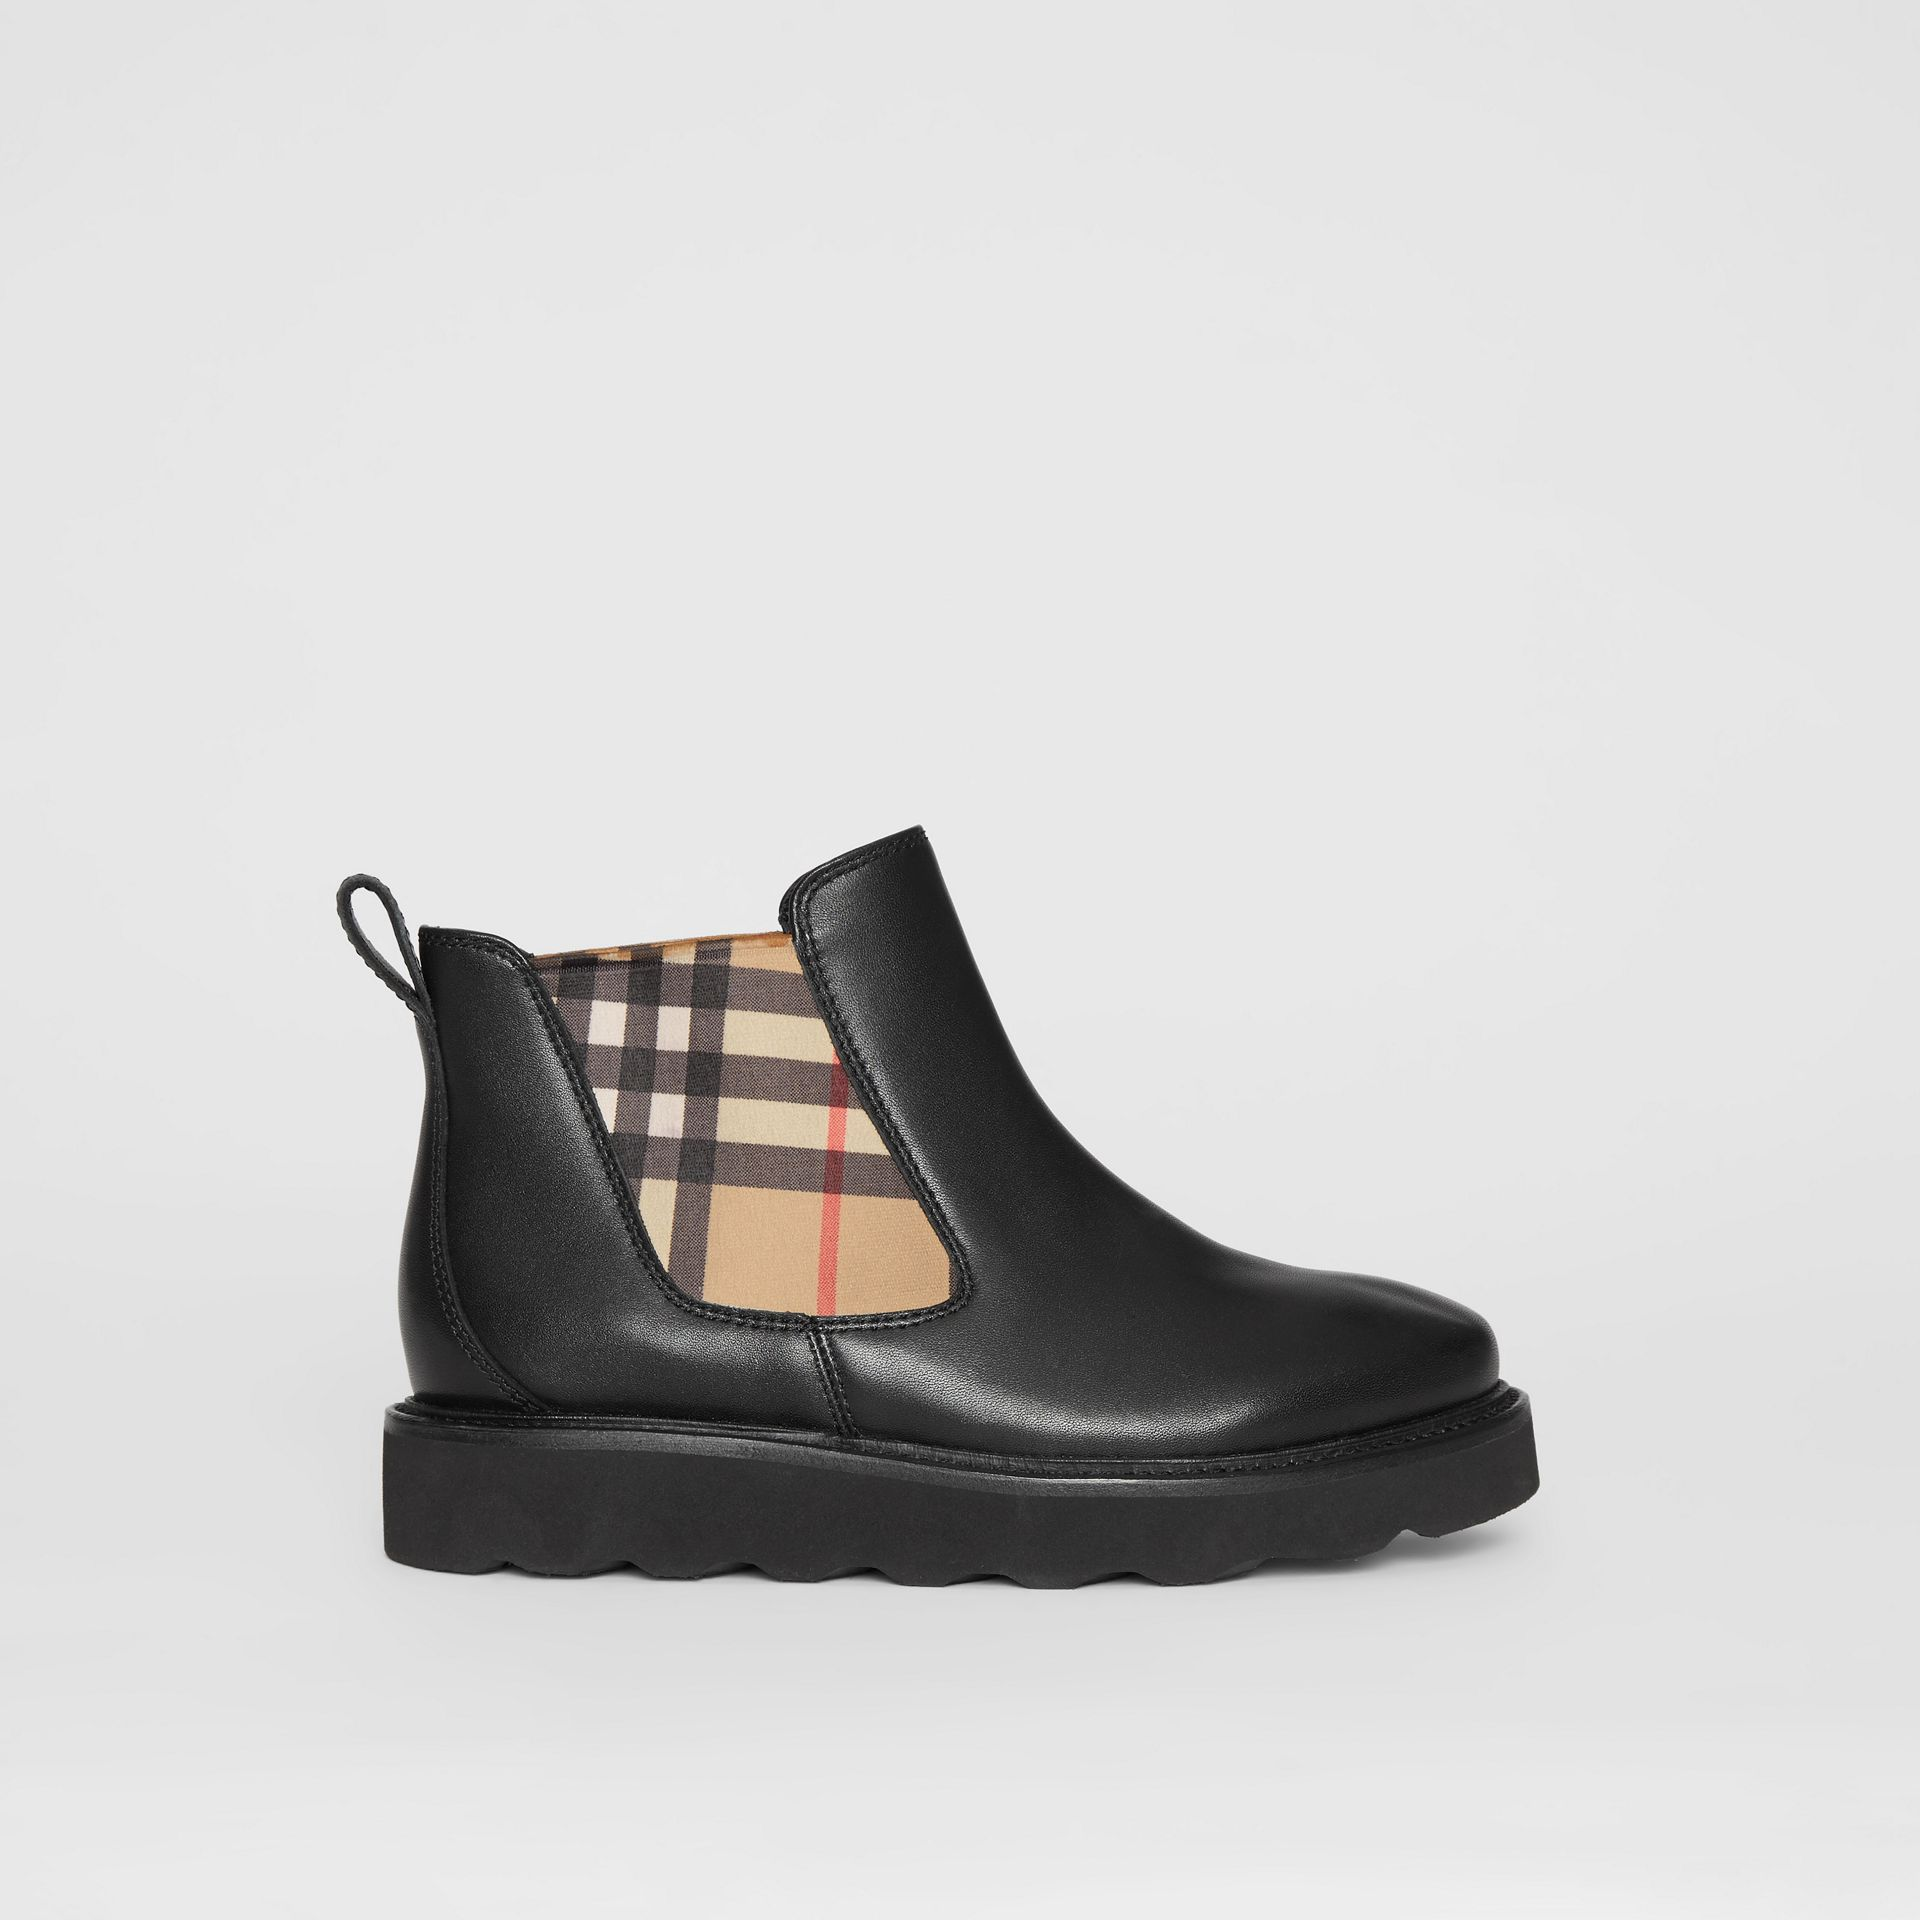 Bottines Chelsea en cuir et tissu Vintage check (Noir) - Enfant | Burberry - photo de la galerie 3